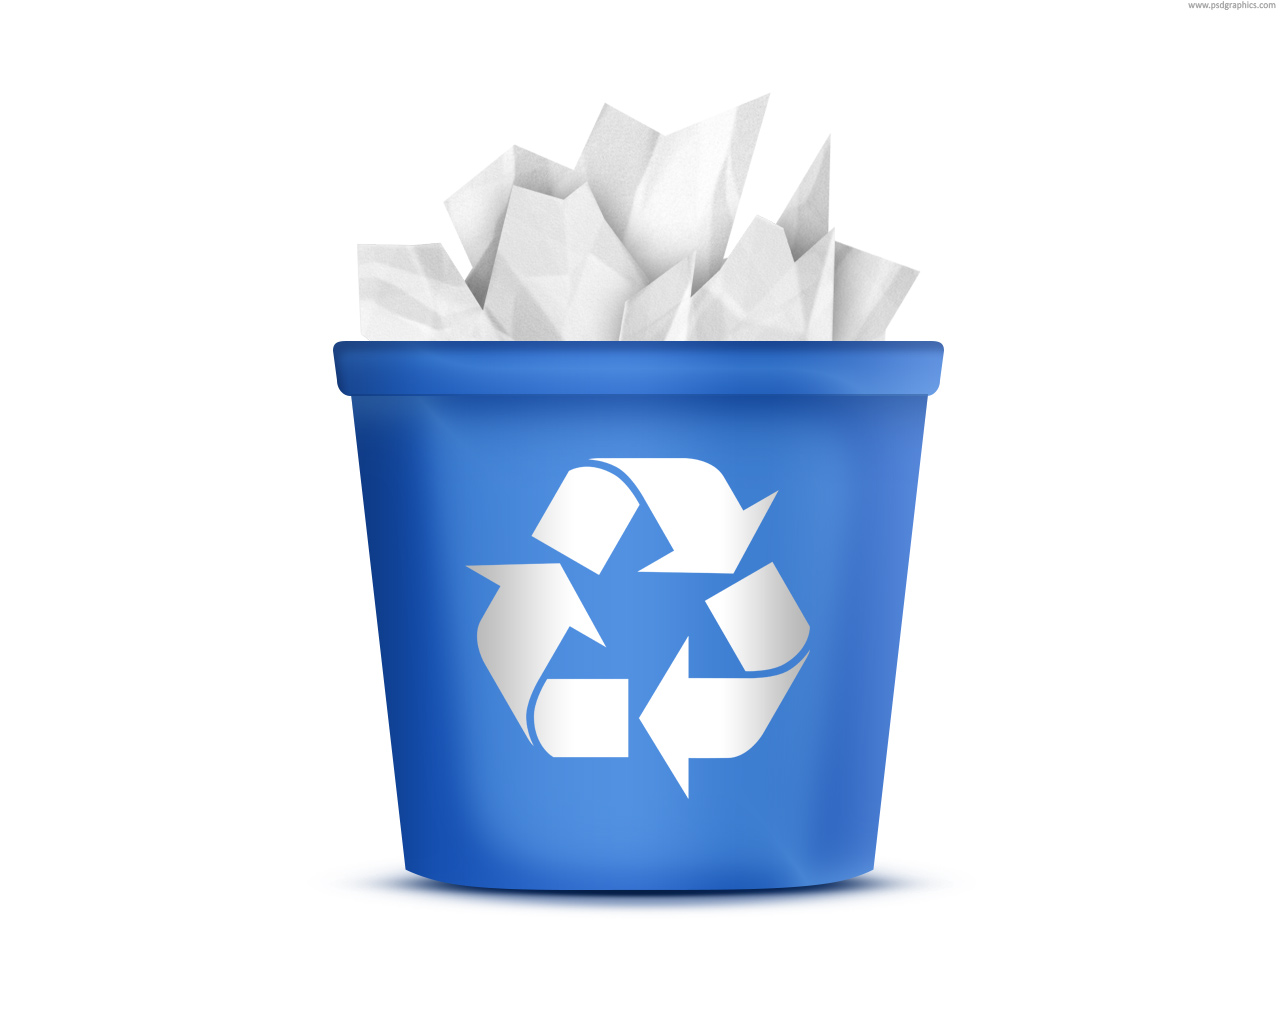 Managing Your Image Recycle Bin